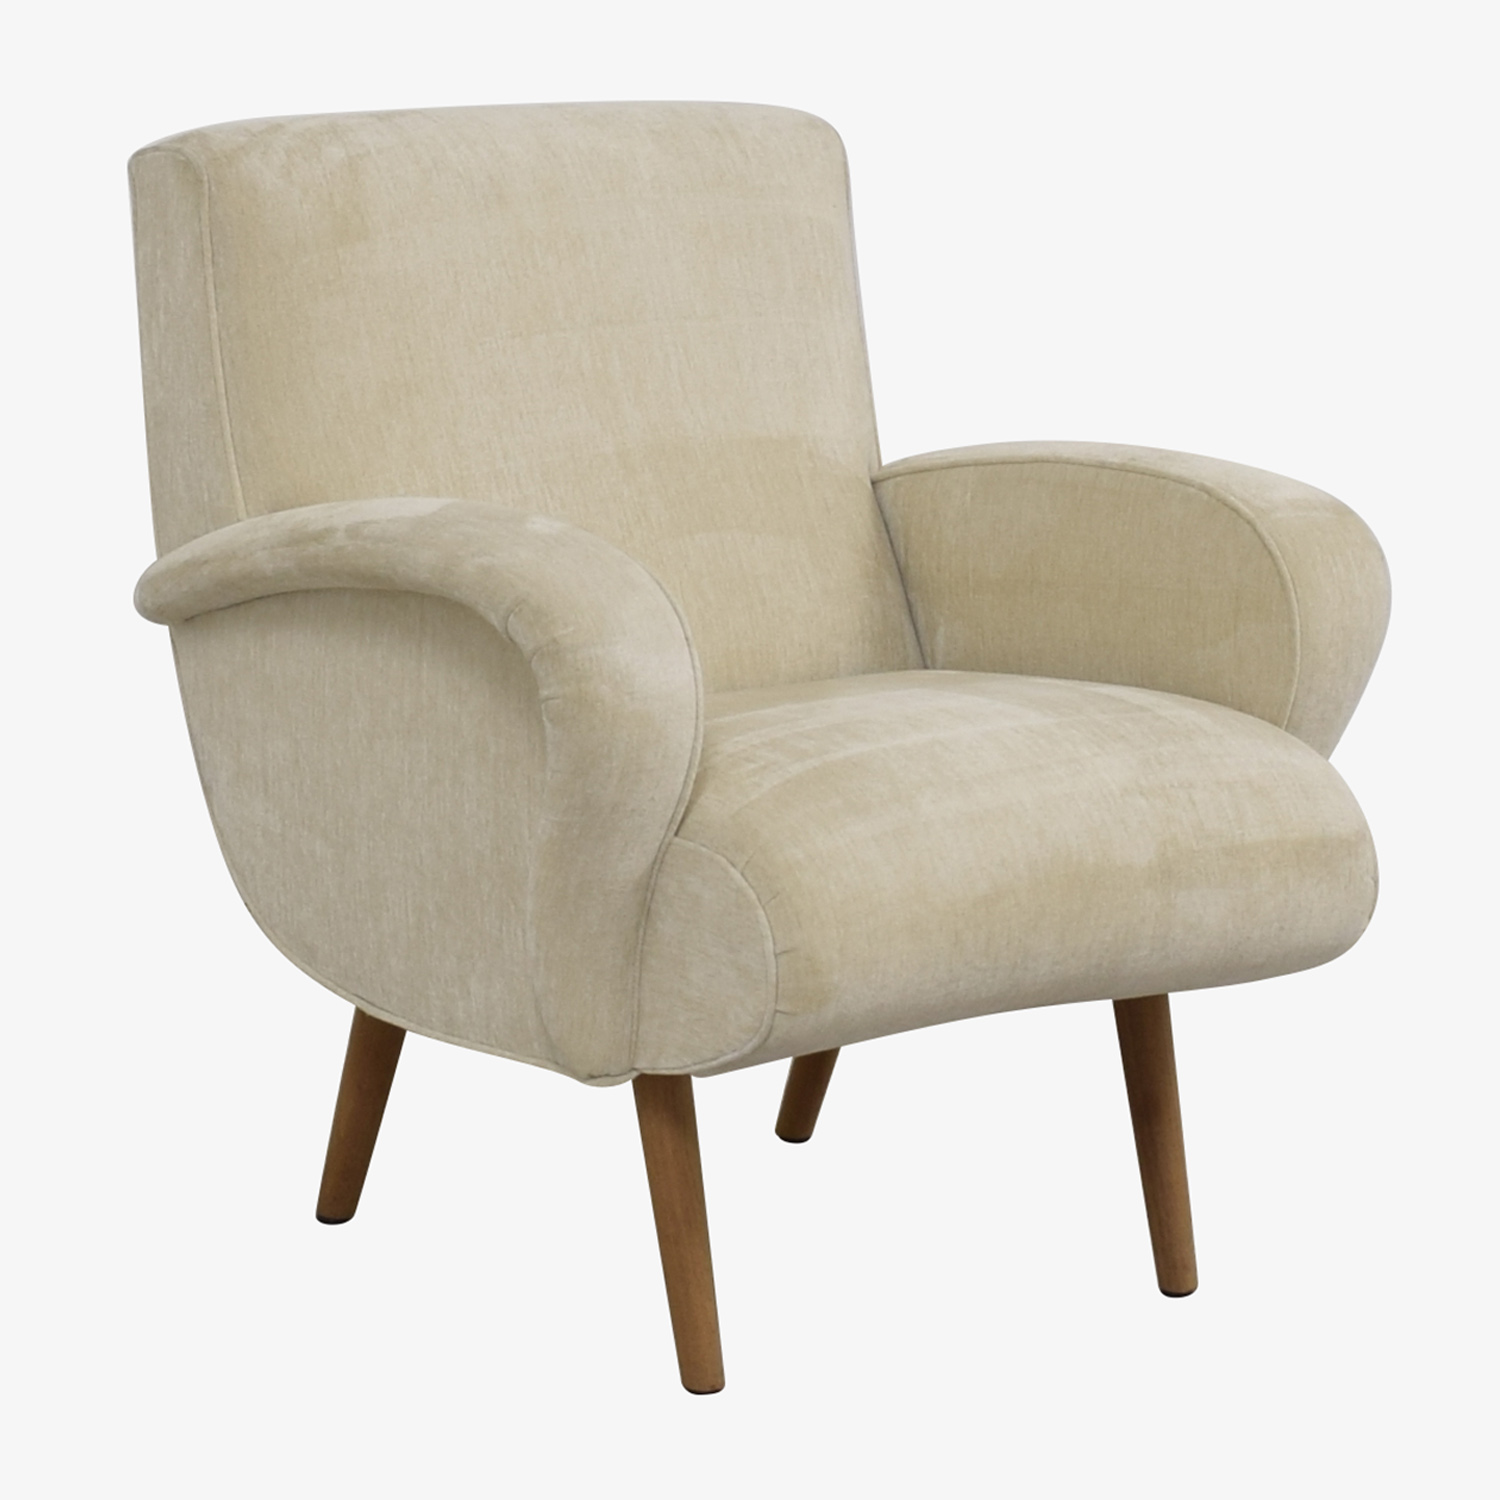 Pleasant 89 Off Furniture Masters Furniture Masters Beige Upholstered Wing Accent Chair Chairs Ibusinesslaw Wood Chair Design Ideas Ibusinesslaworg